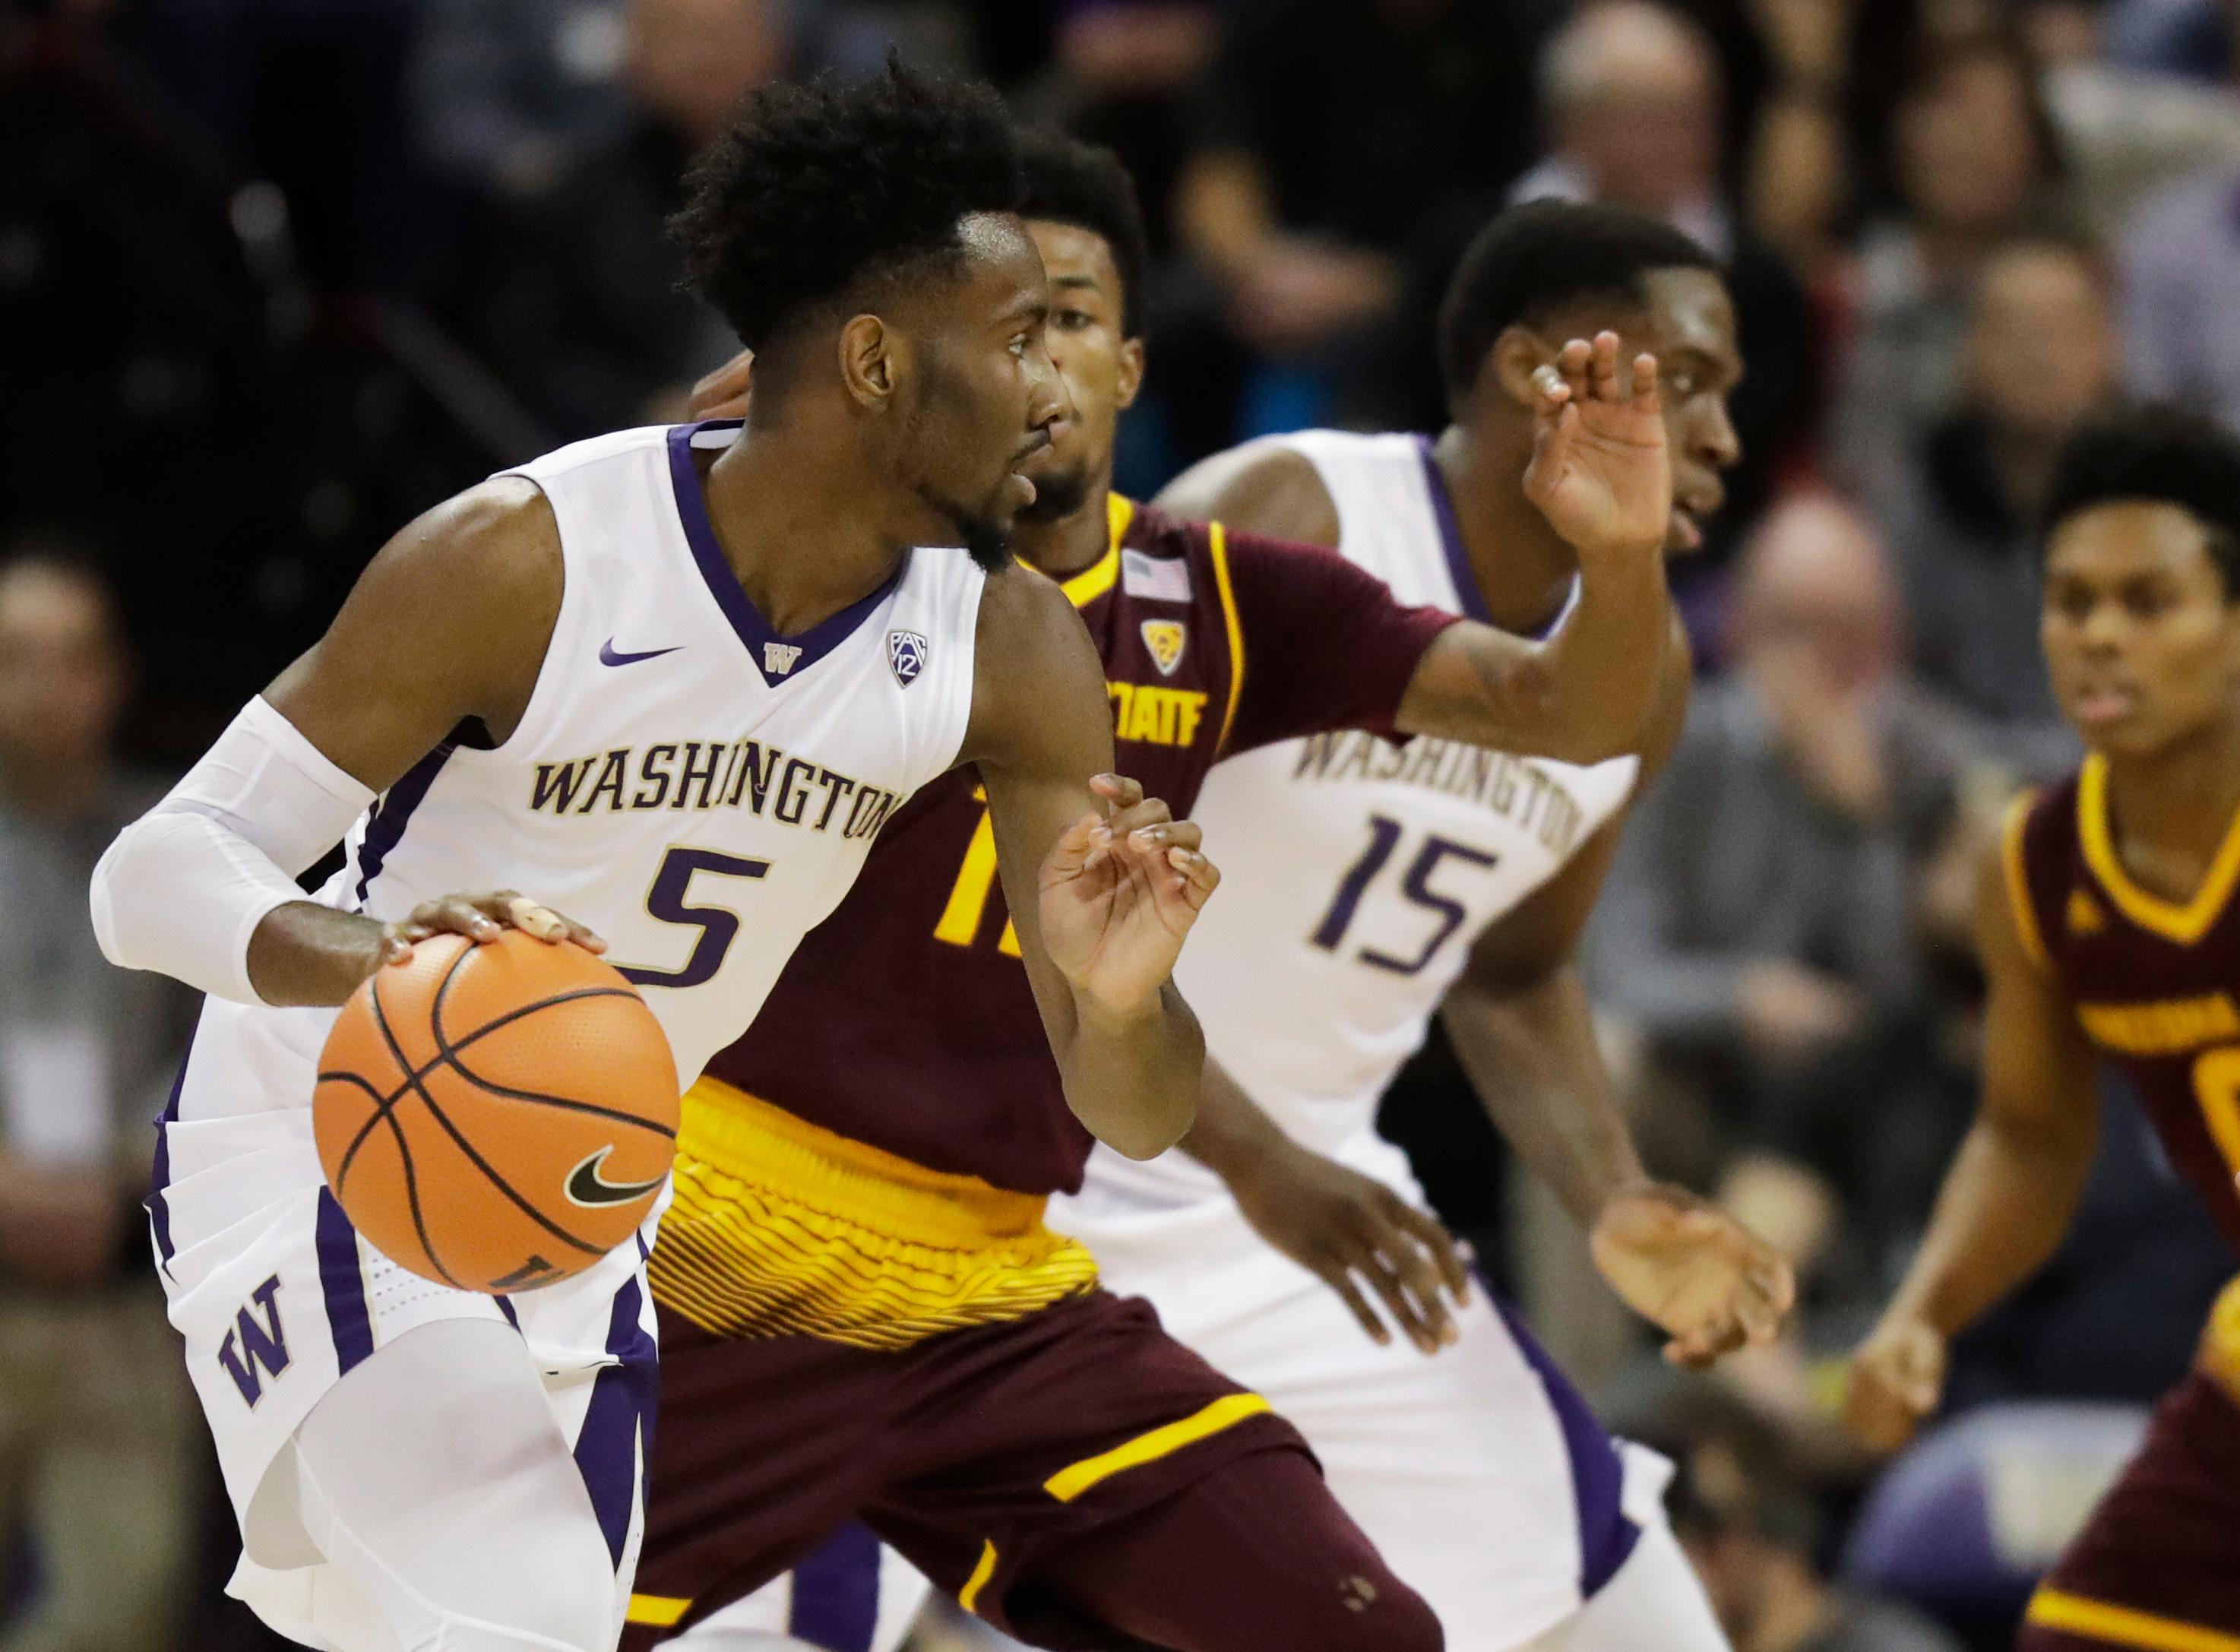 Washington guard Jaylen Nowell (5) drives past Arizona State guard Shannon Evans II, second from left, in the first half of an NCAA college basketball game, Thursday, Feb. 1, 2018, in Seattle. (AP Photo/Ted S. Warren)